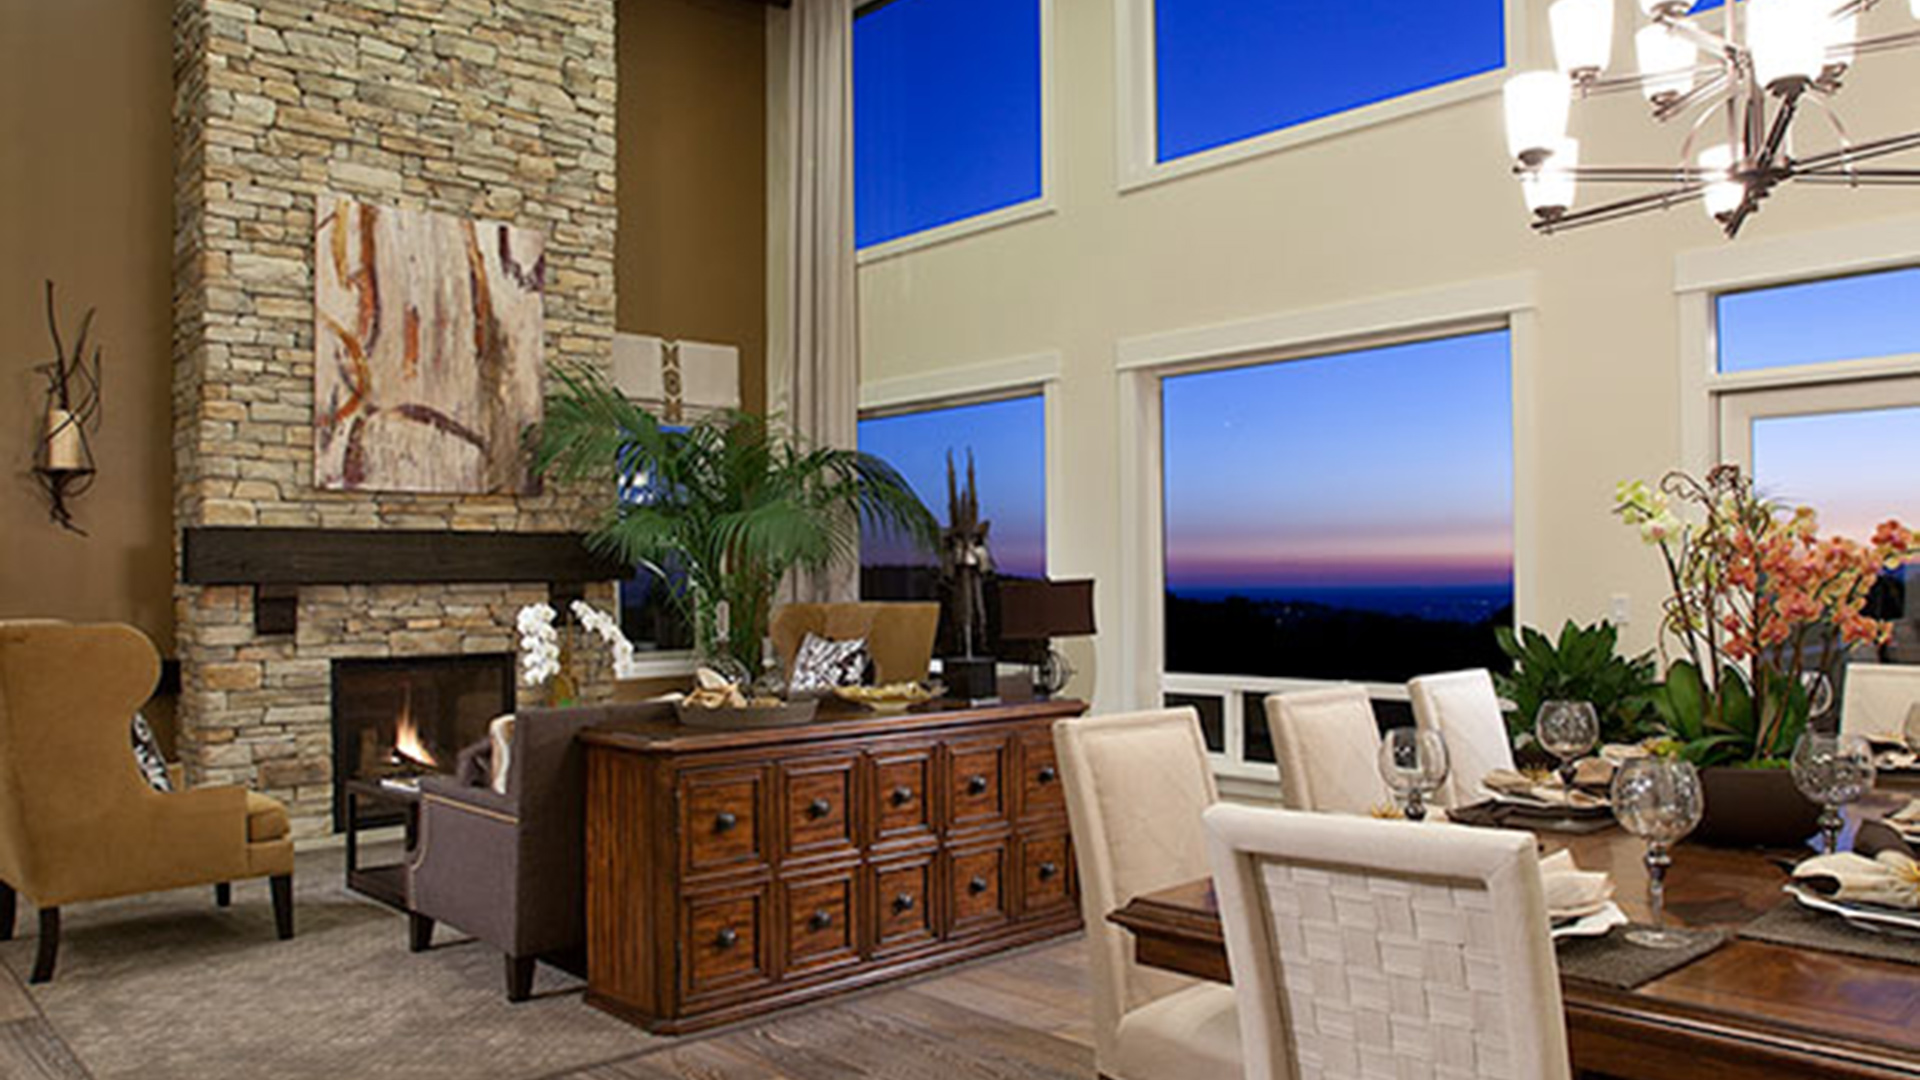 With stunning views this great room showcases